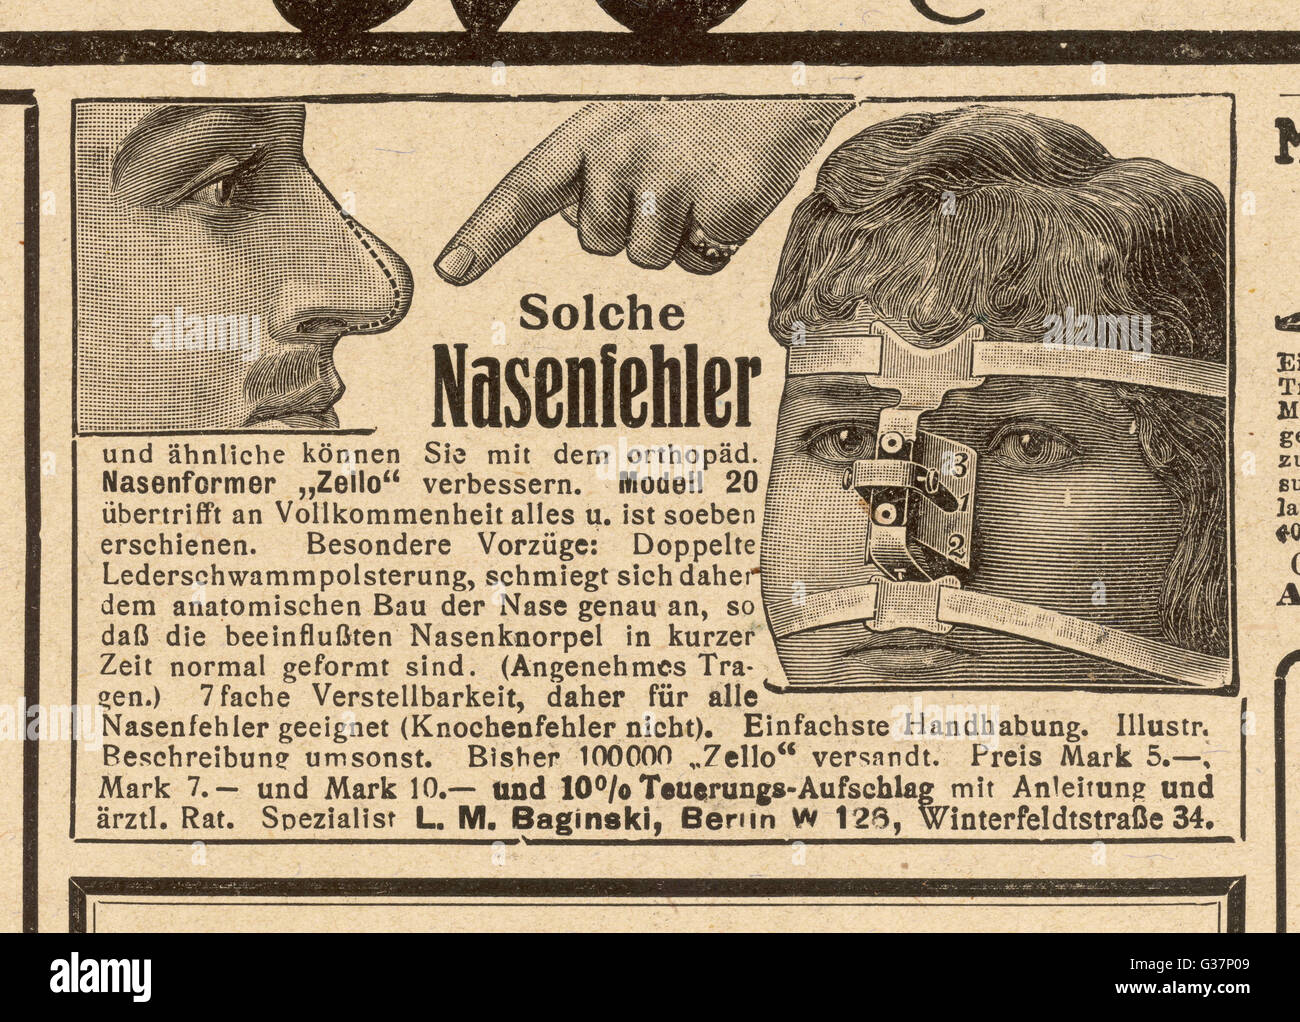 If you want to change the shape of your nose, just use Herr Spezialist Baginski's delightful device       Date: - Stock Image